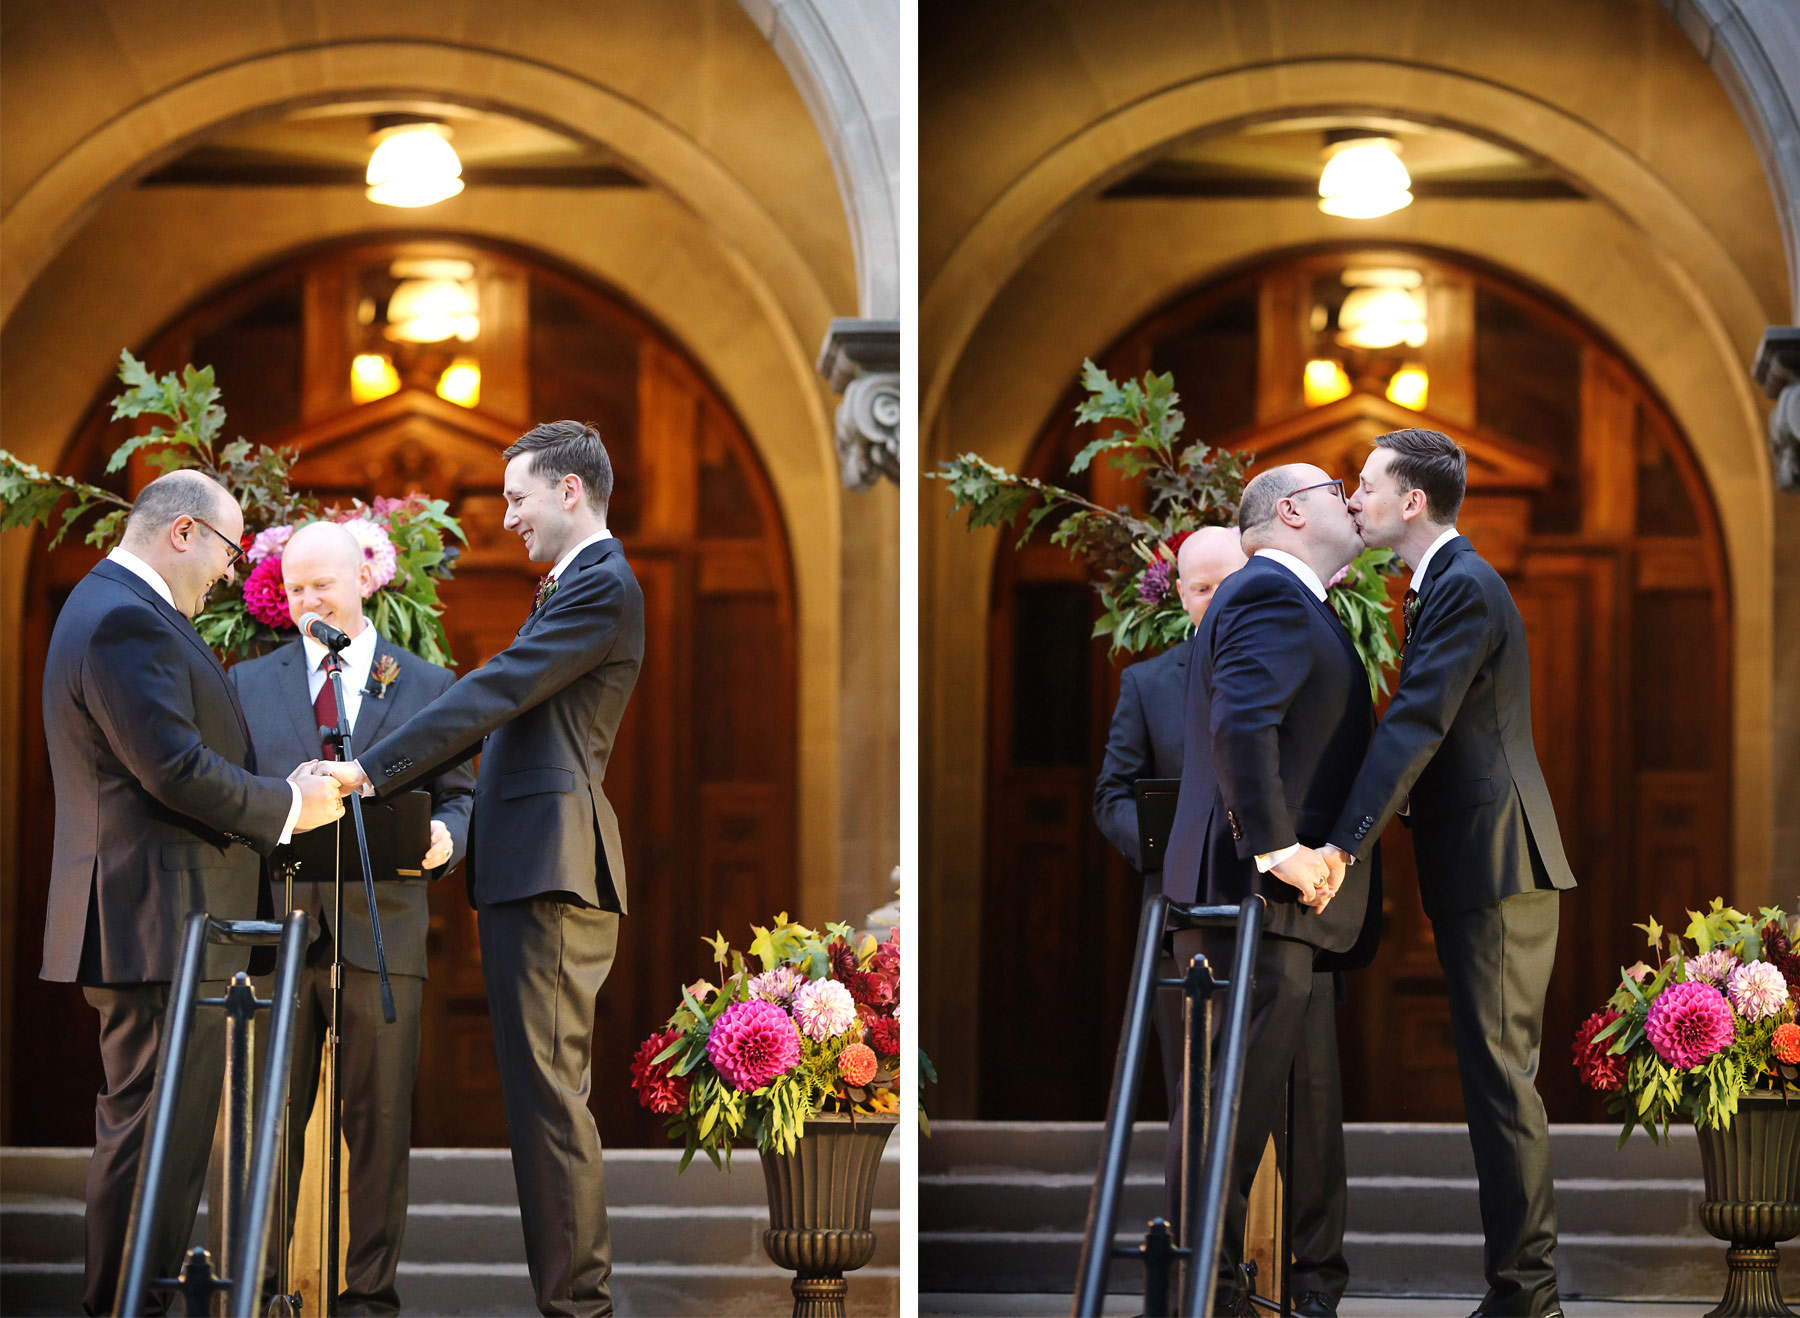 15-Minneapolis-Minnesota-Wedding-Photographer-by-Andrew-Vick-Photography-Fall-Autumn-American-Swedish-Institute-Ceremony-Groom-Kiss-Ben-and-Adam.jpg